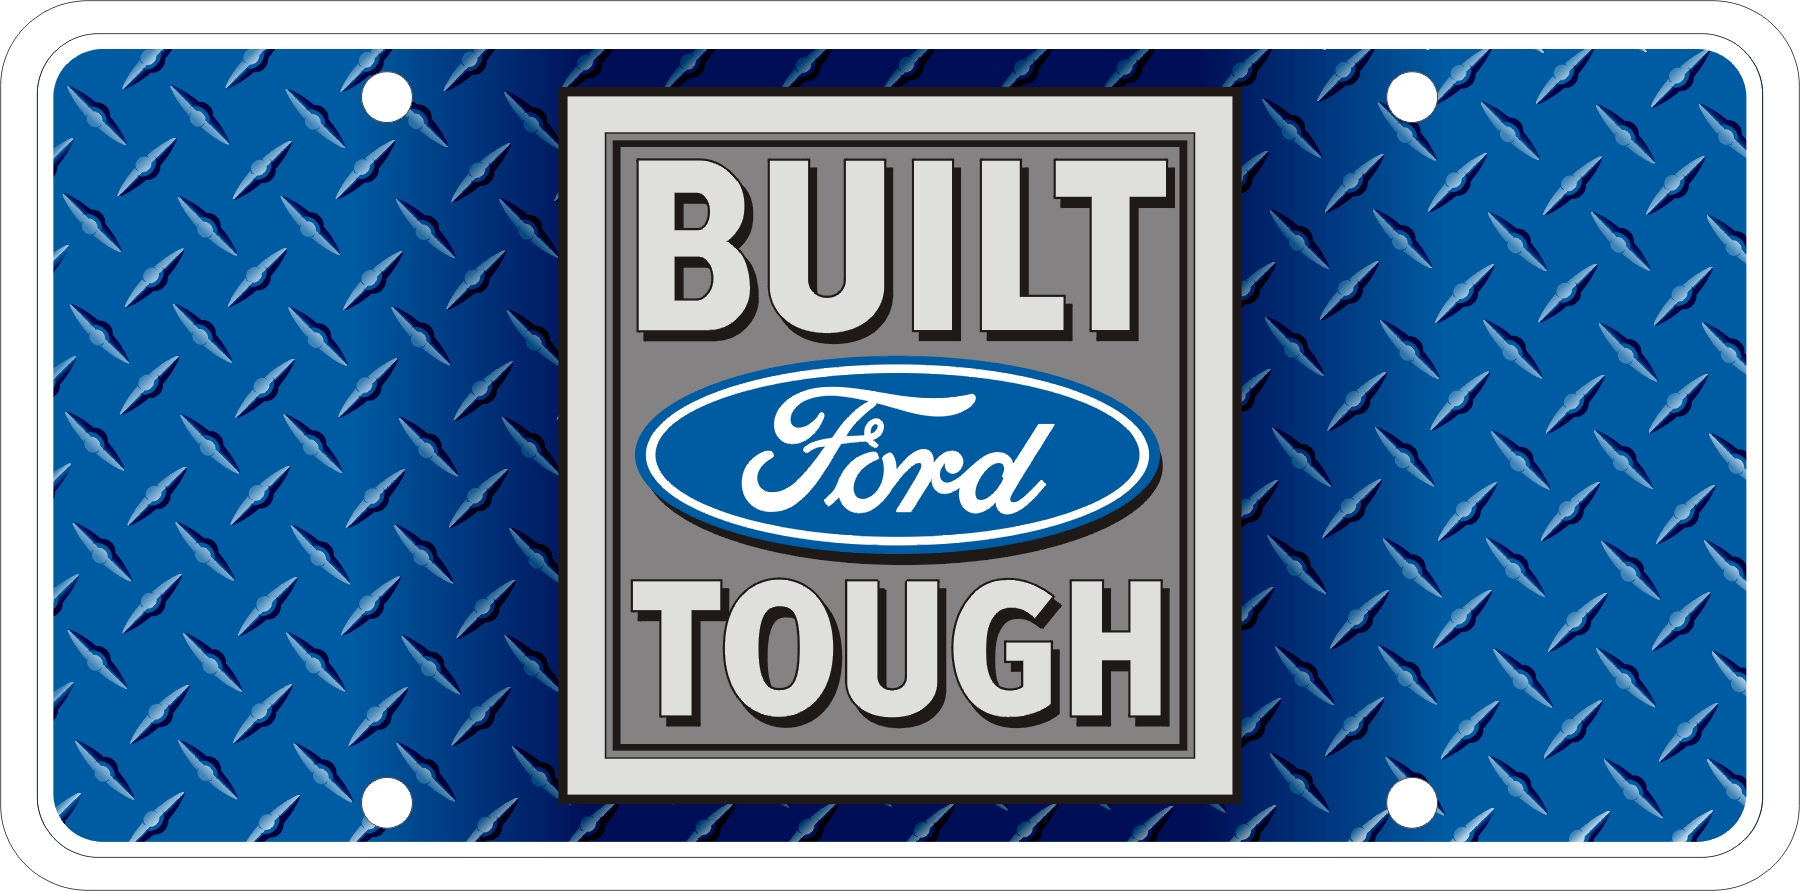 Built Ford Tough Logos